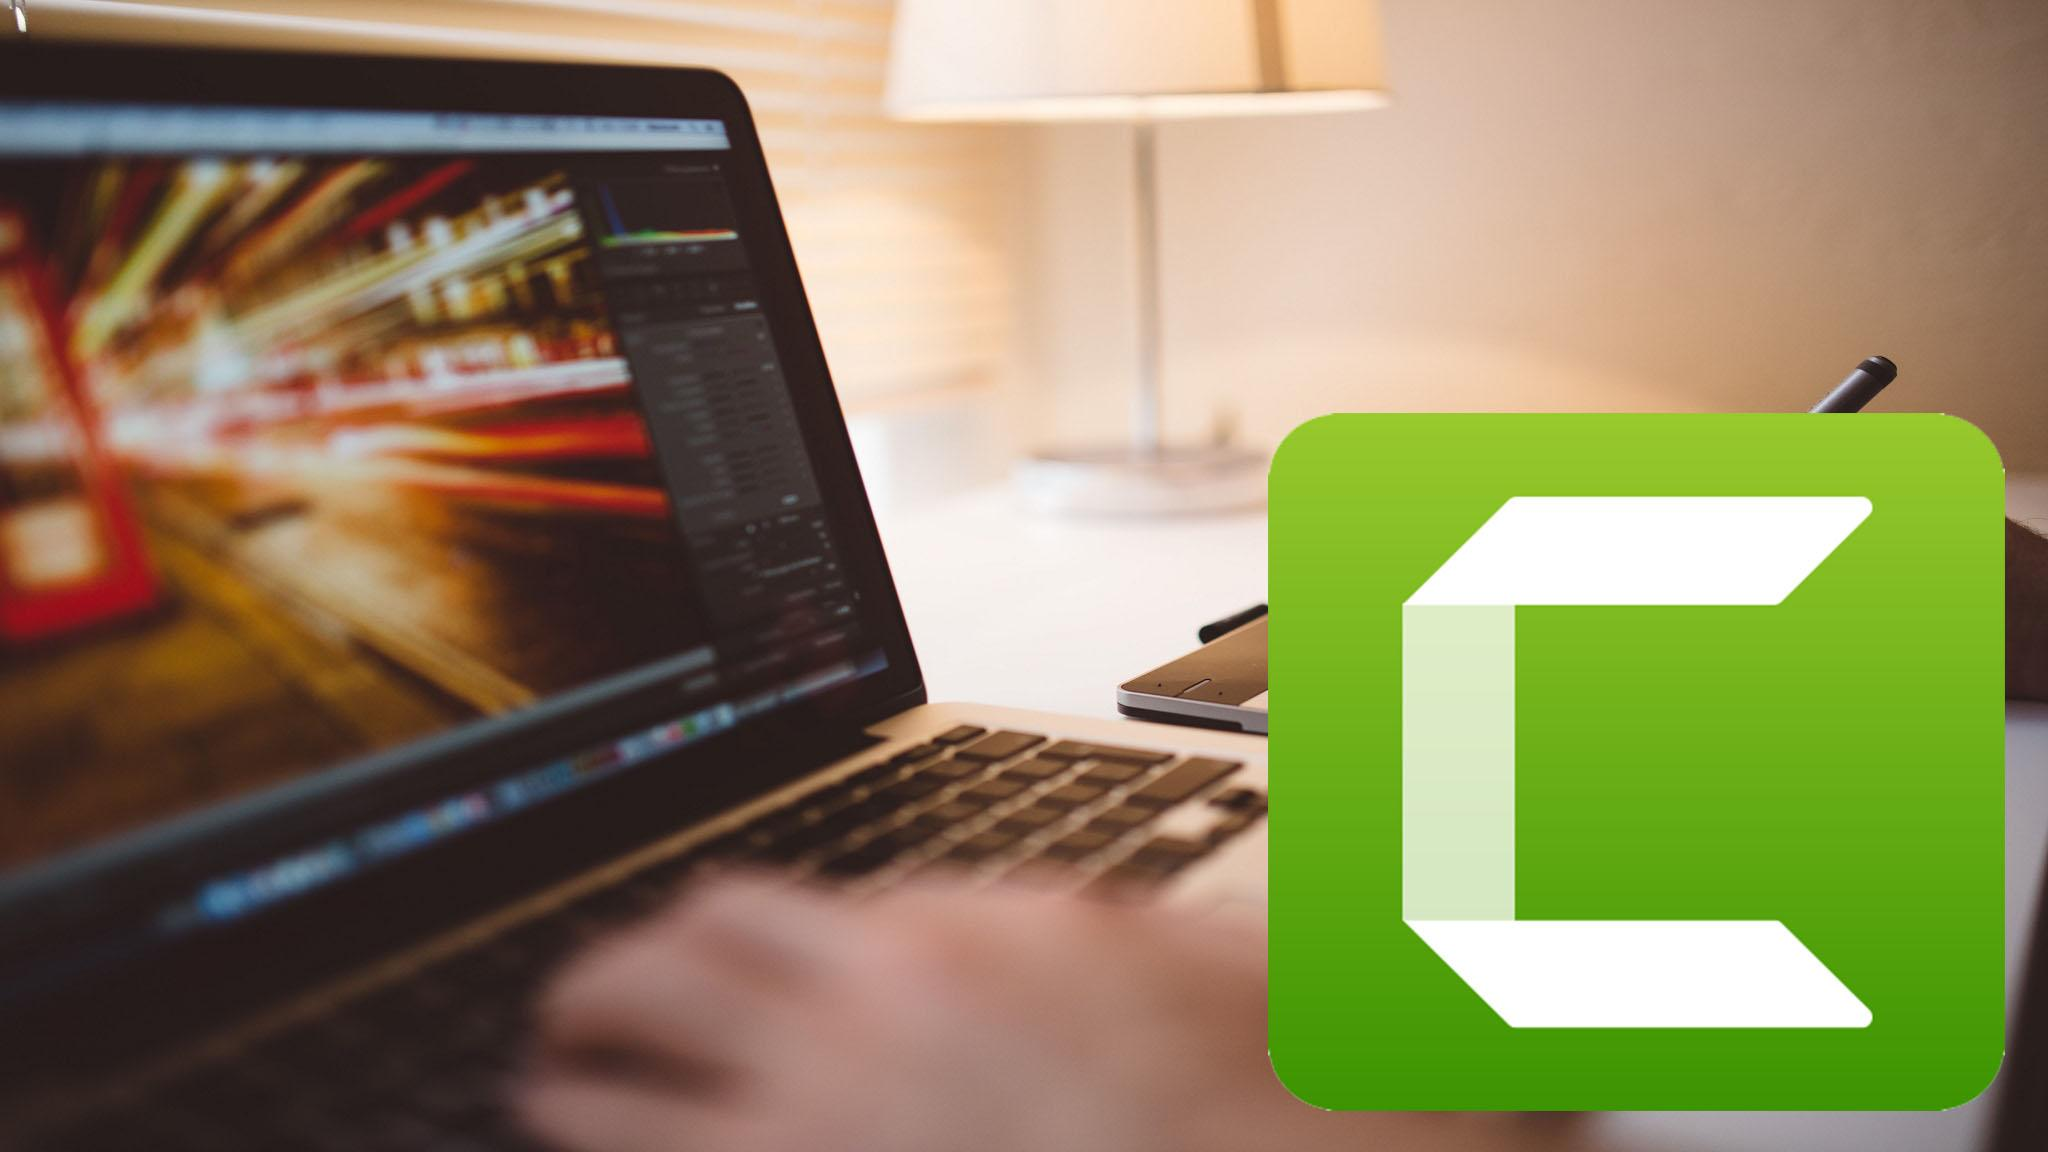 The Advance Video Editing Course With Camtasia Studio  -Skillshare Free Course With Skillshare Coupon Code